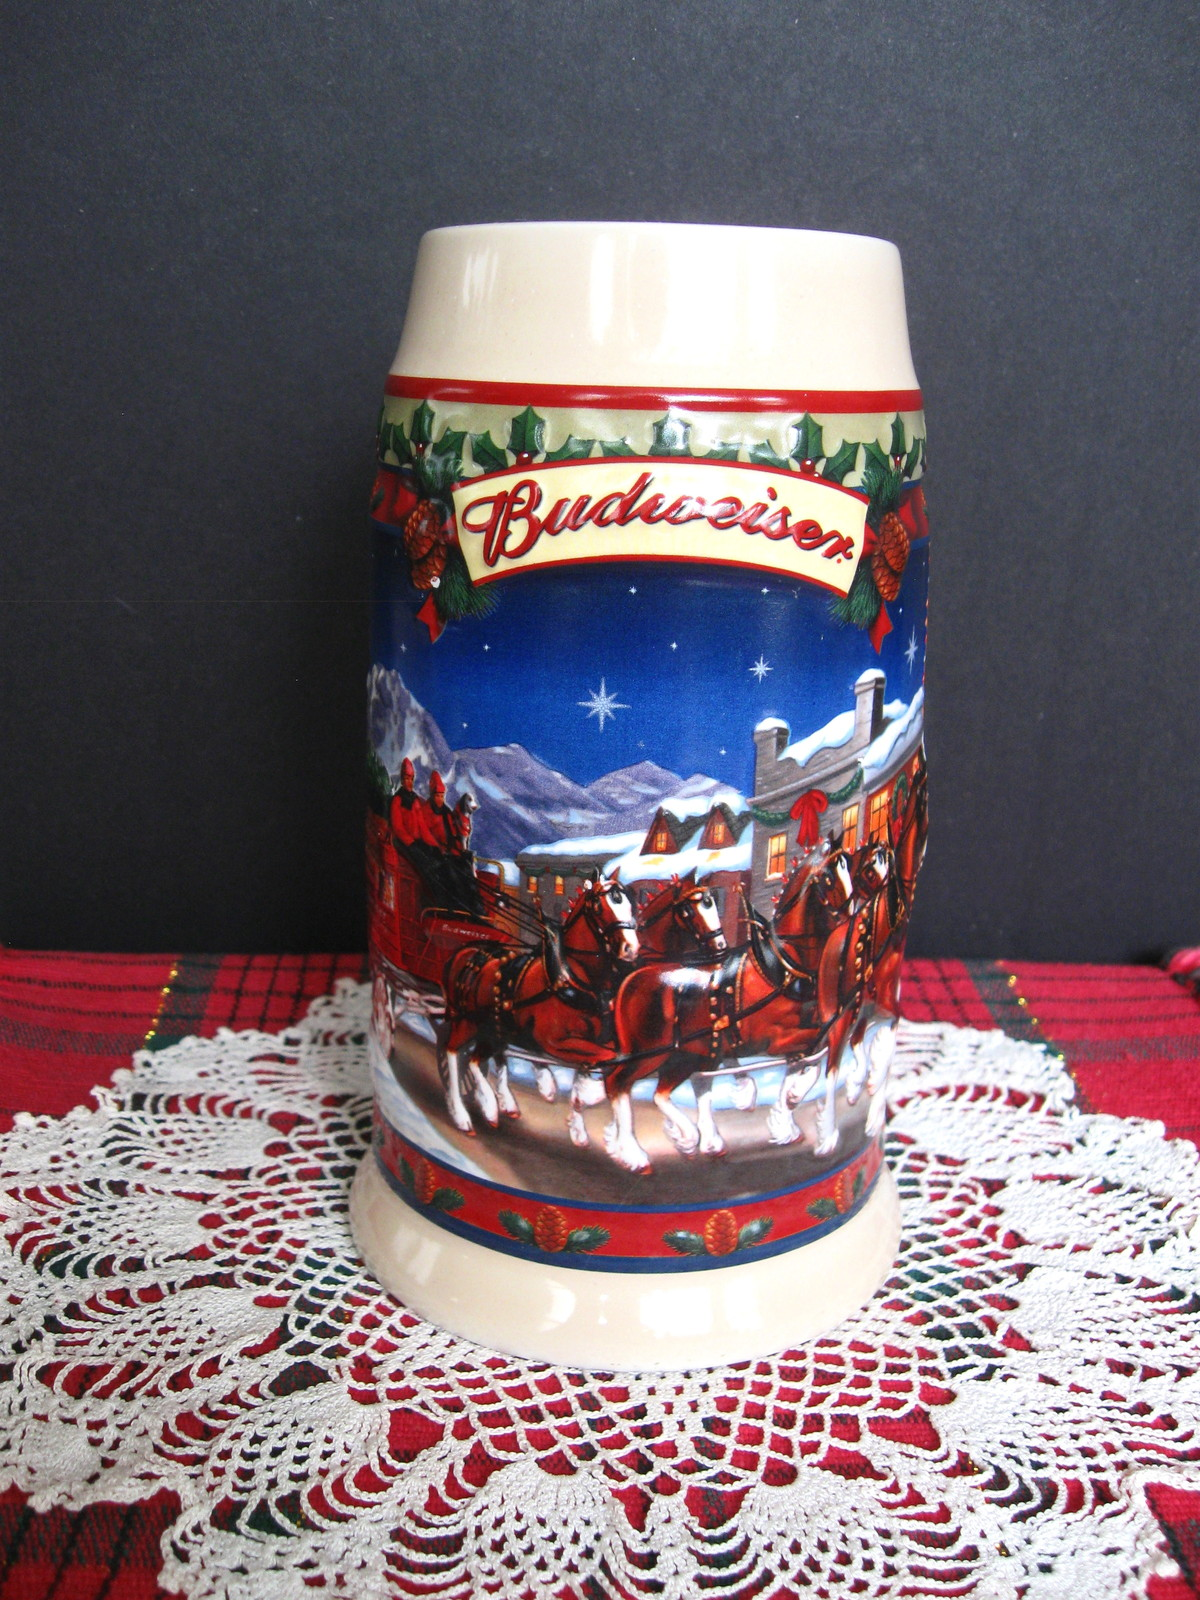 2003 Budweiser Holiday Stein - Old Towne Holiday - No. CS560 - No Box image 2